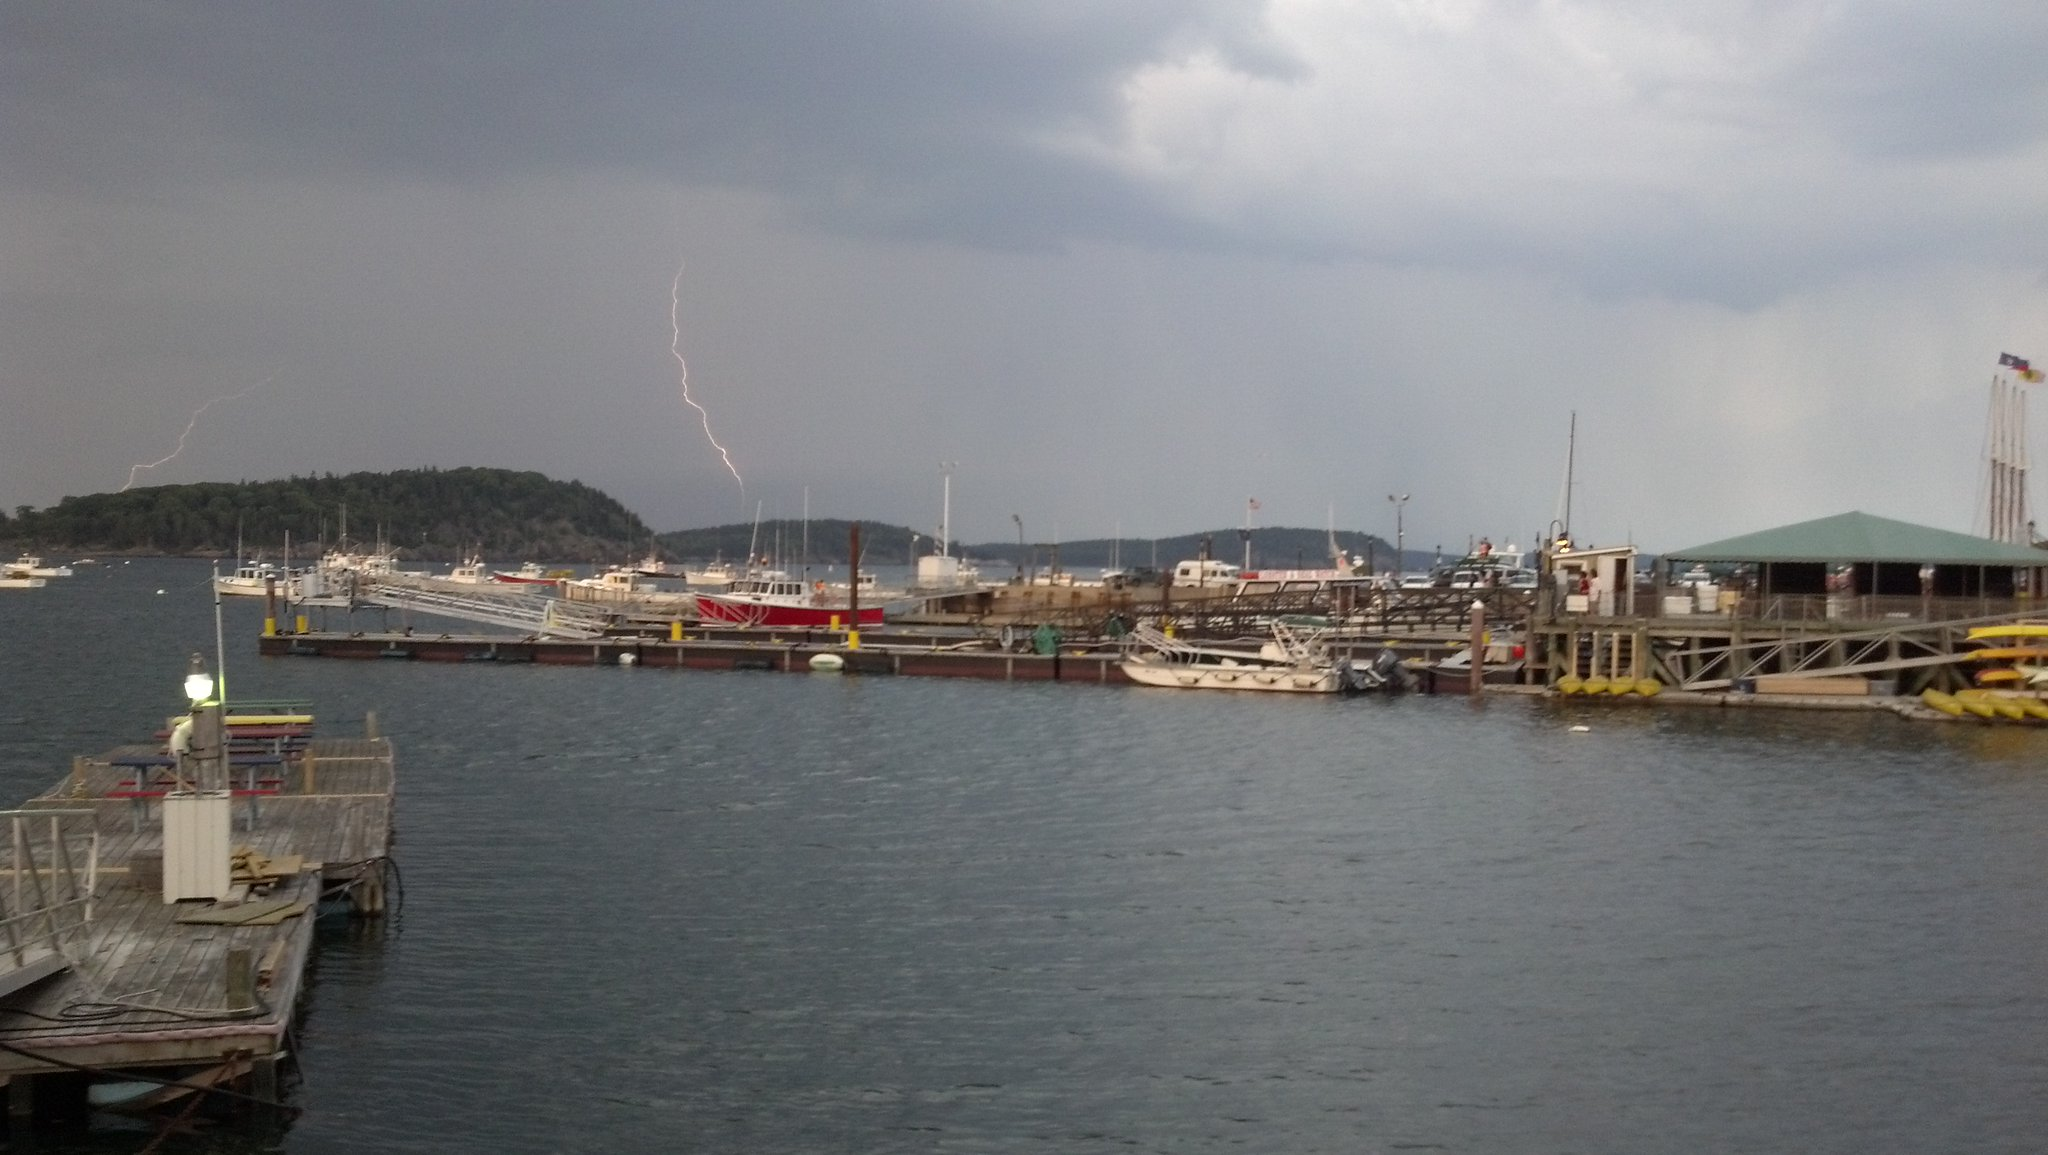 It's storming in Bar Harbor tonight. http://t.co/lj4PVUFz